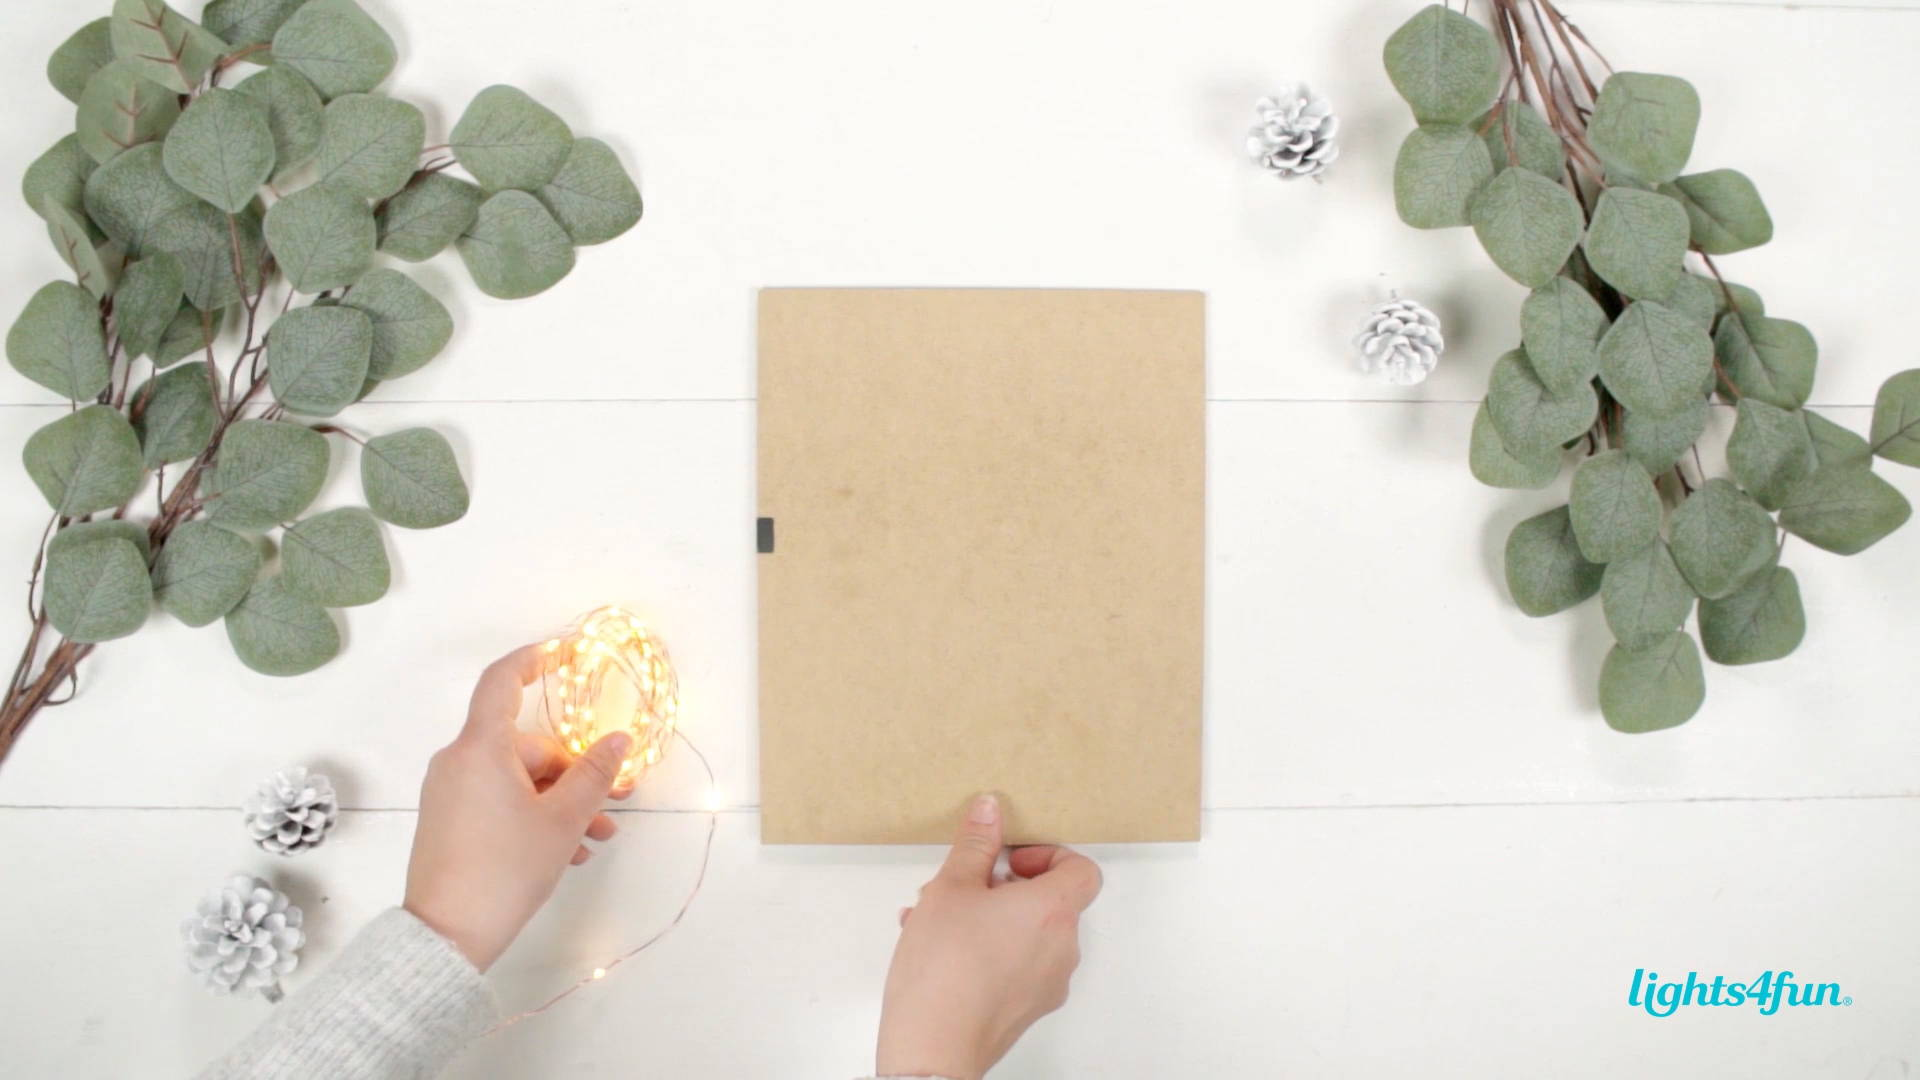 A DIY step of the Scandi Christmas decoration tutorial. Decorating the backboard with micro fairy lights.